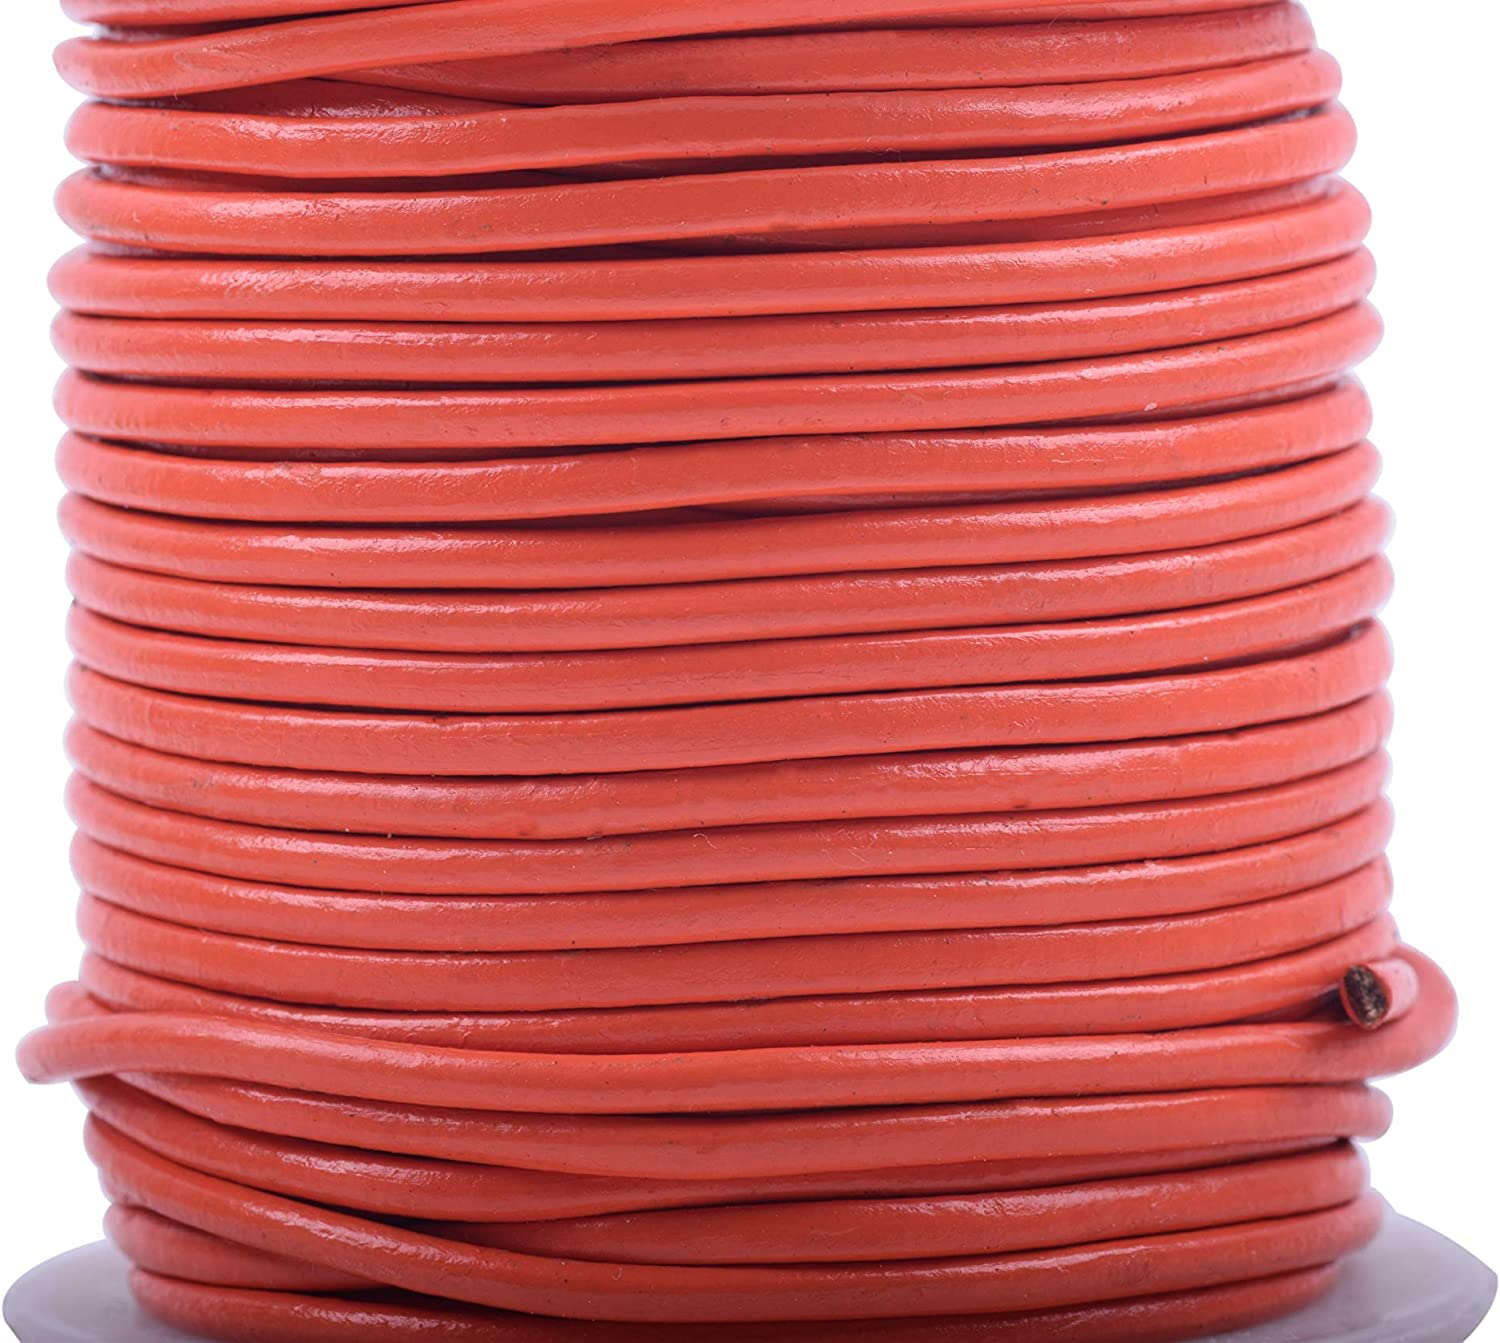 KONMAY 5 Yards 5.0mm Solid Round Real Leather Cord for Jewelry Making Crafting Beading Natural